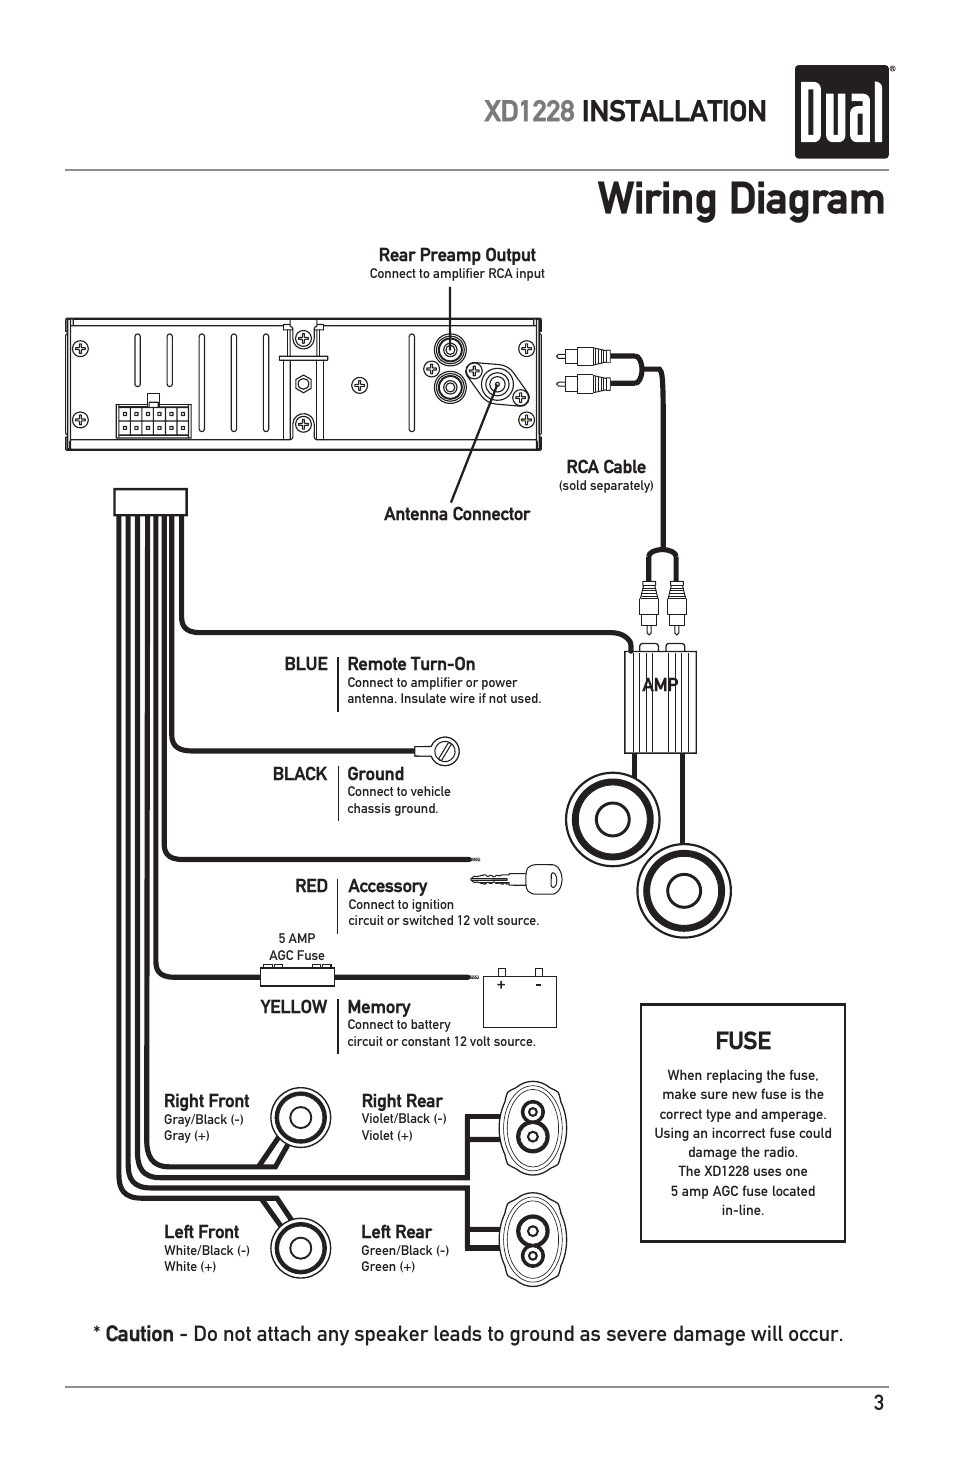 Wiring diagram, Xd1228 installation, Fuse | Dual XD1228 User Manual | Page  3 / 12